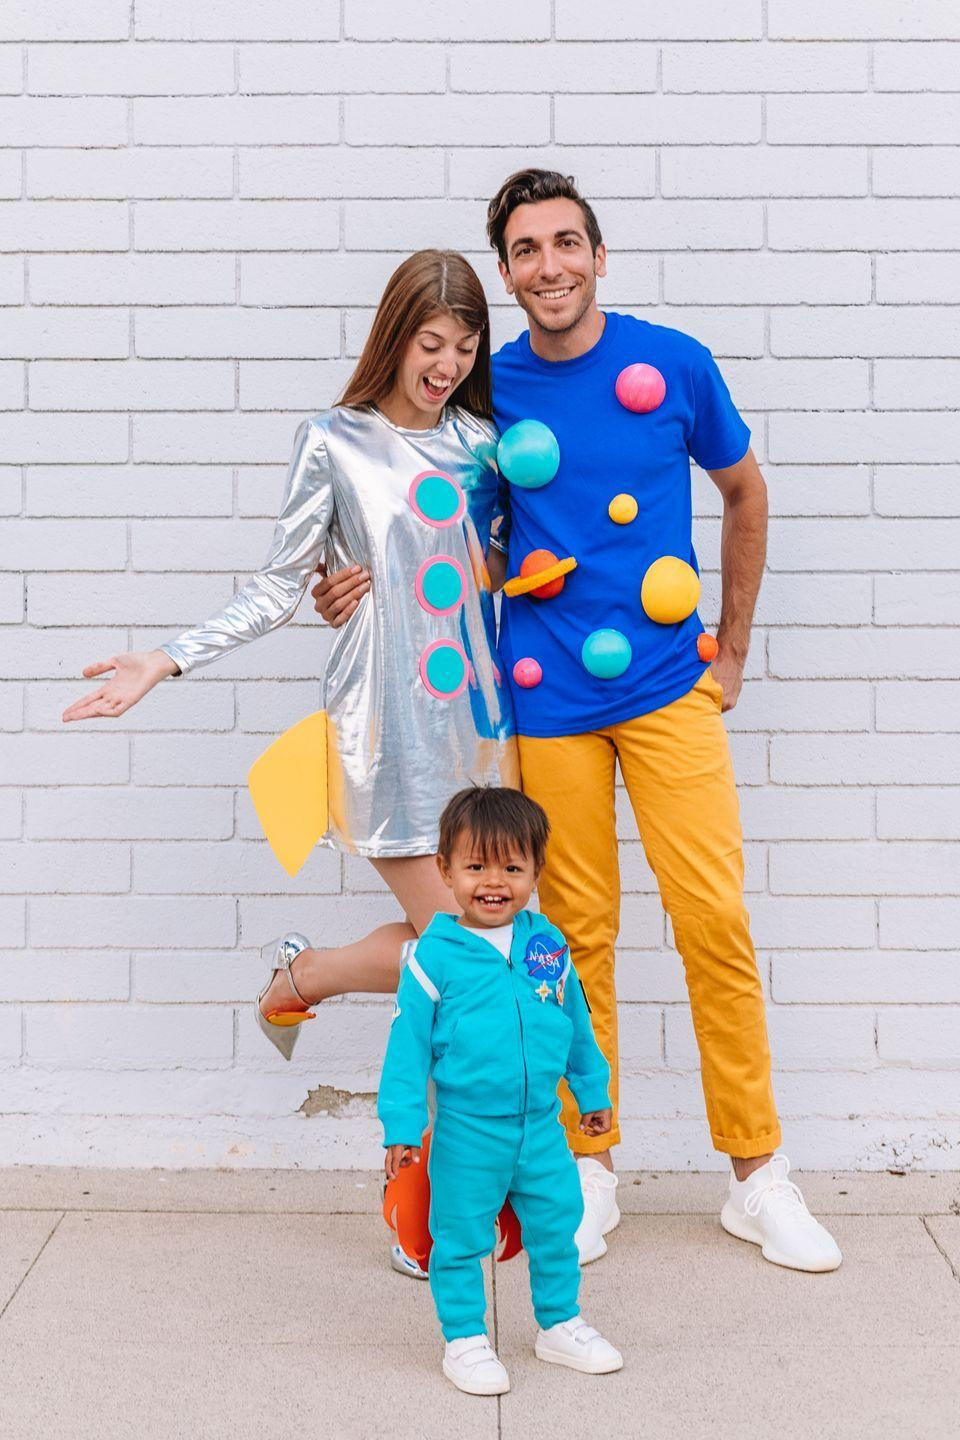 """<p>Take your little one out trick-or-treating in intergalactic style, with this fun costume idea for the whole family. </p><p><strong>Get the tutorial at <a href=""""https://studiodiy.com/diy-space-family-costume/"""" rel=""""nofollow noopener"""" target=""""_blank"""" data-ylk=""""slk:Studio DIY"""" class=""""link rapid-noclick-resp"""">Studio DIY</a>.</strong></p><p><strong><a class=""""link rapid-noclick-resp"""" href=""""https://www.amazon.com/gp/product/B01N0IG2EQ/ref=as_li_ss_tl?tag=syn-yahoo-20&ascsubtag=%5Bartid%7C10050.g.28496790%5Bsrc%7Cyahoo-us"""" rel=""""nofollow noopener"""" target=""""_blank"""" data-ylk=""""slk:SHOP SILVER DRESSES"""">SHOP SILVER DRESSES</a><br></strong></p>"""